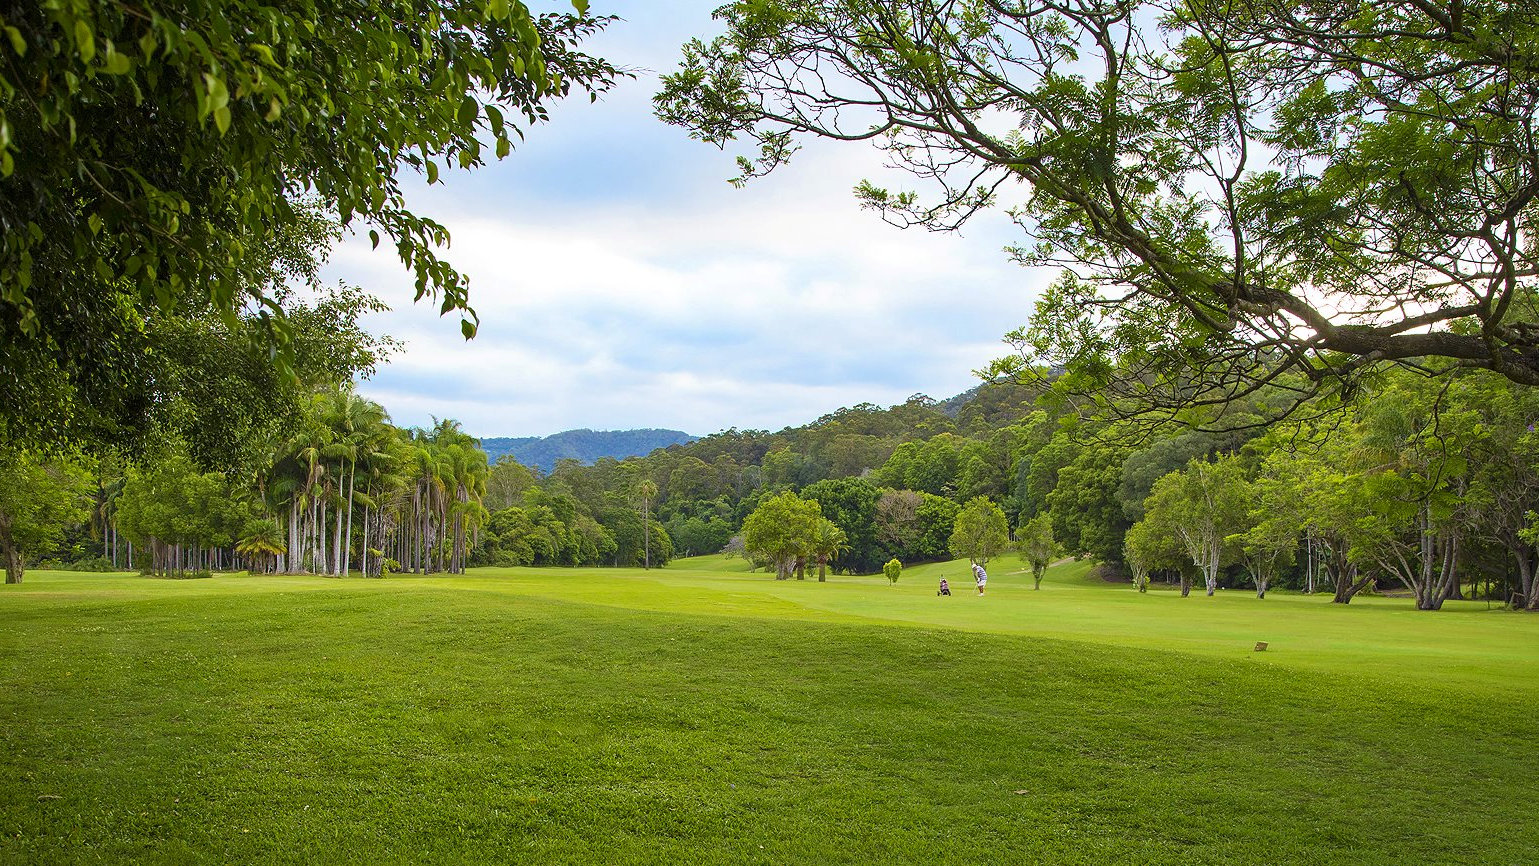 Golf fairway at The Boomerang Farm in Mudgeeraba near the Gold Coast. Originally a dairy farm, it is now a 9 hole golf course, mountain bike park, and events venue including for weddings